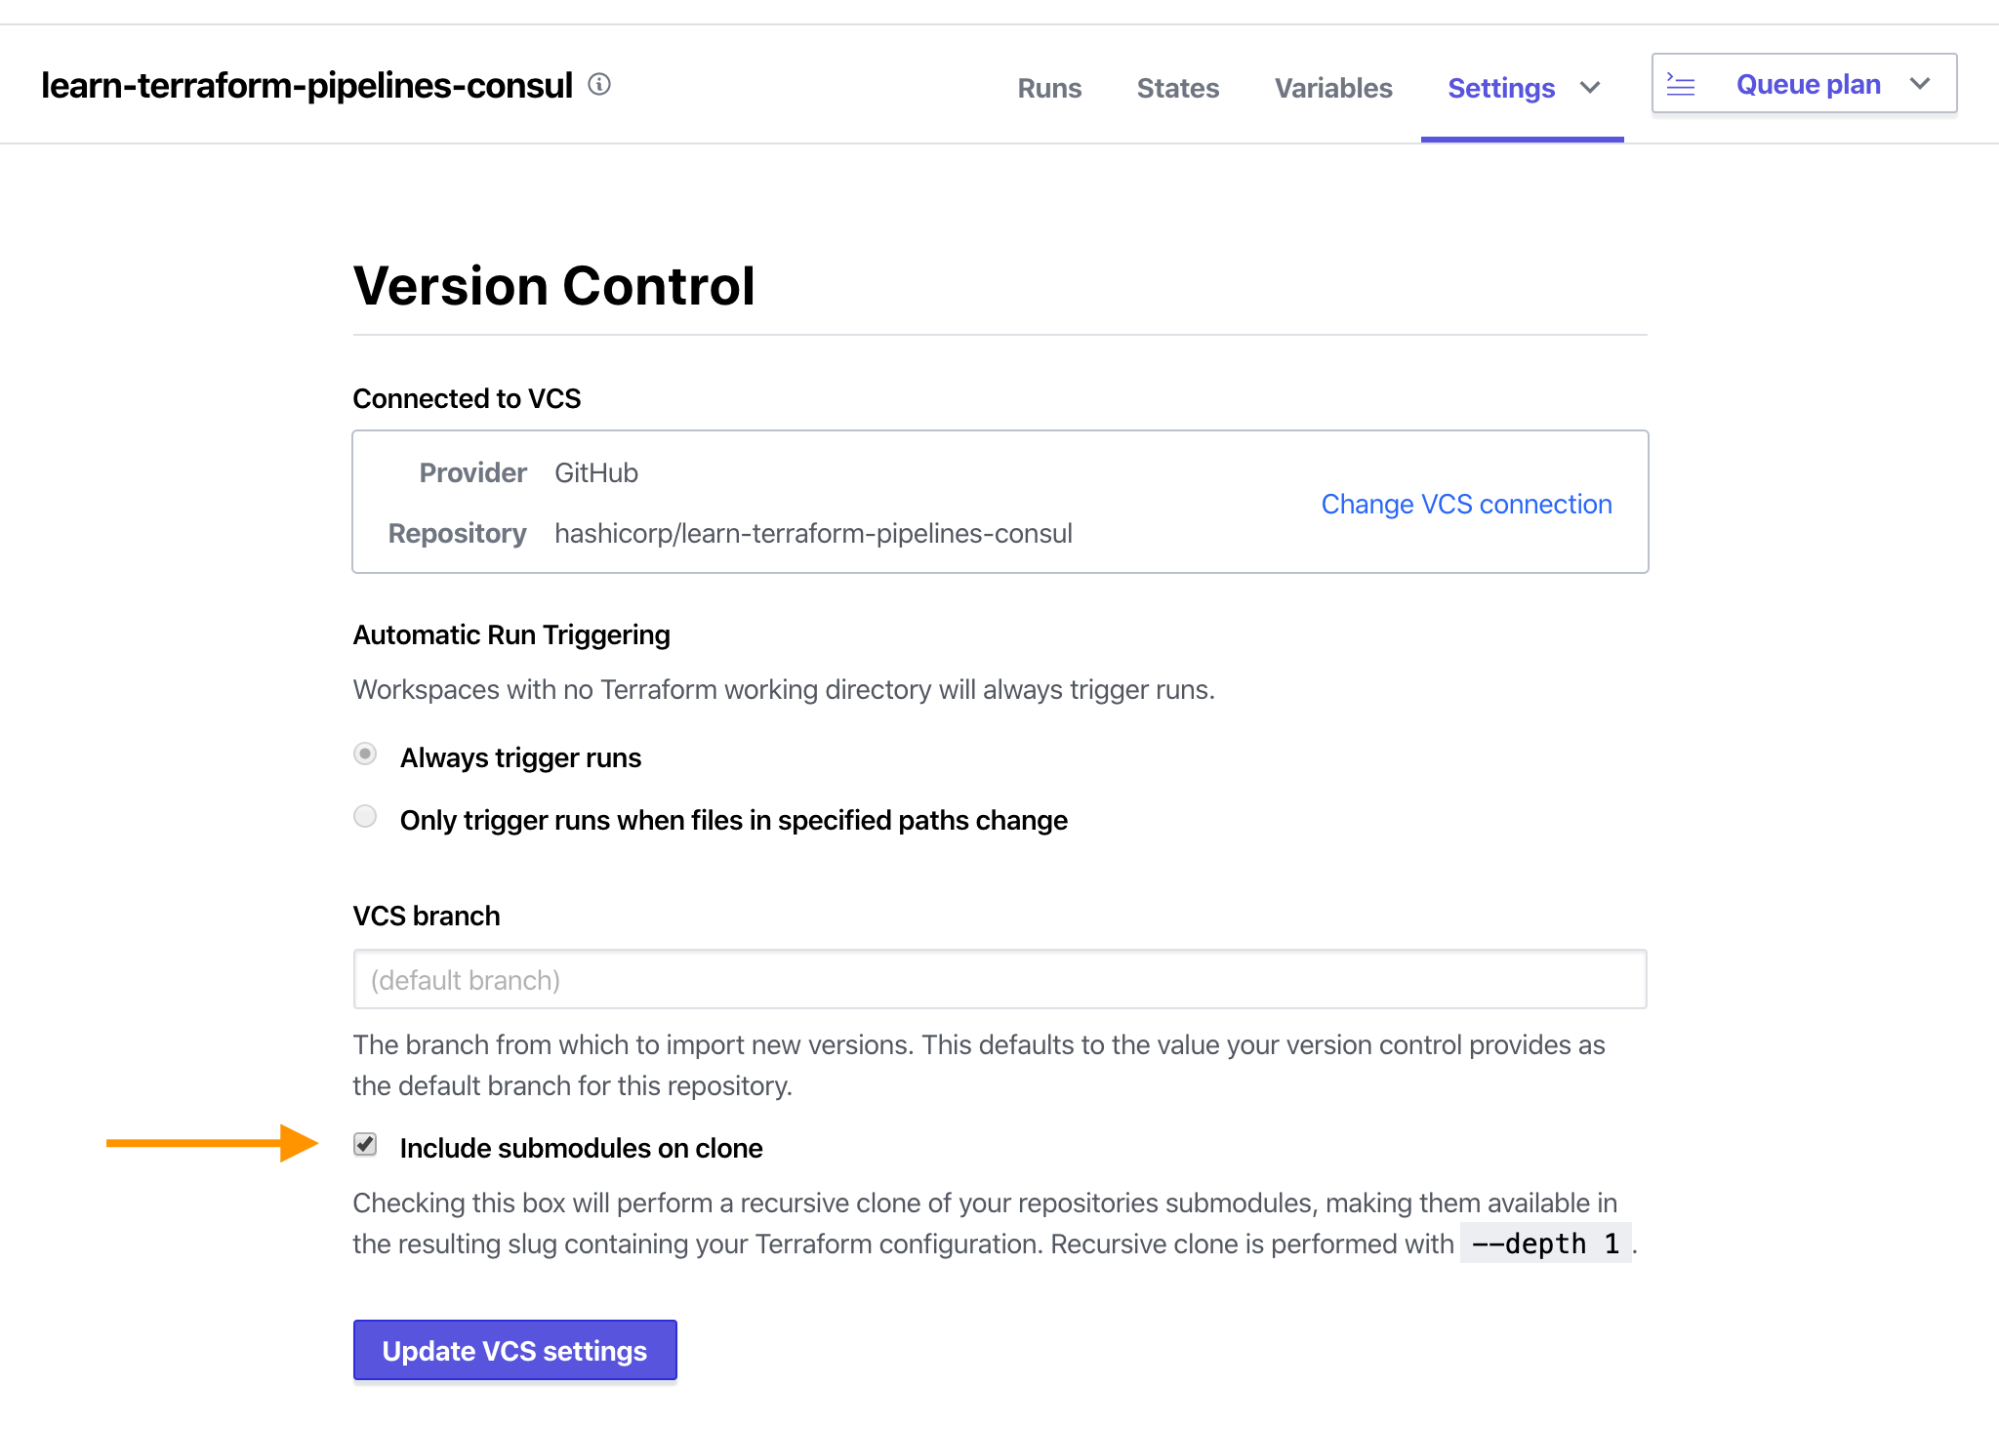 Terraform Cloud Kubernetes Workspace fully configured version control version. Include submodules on clone option has been ticked.